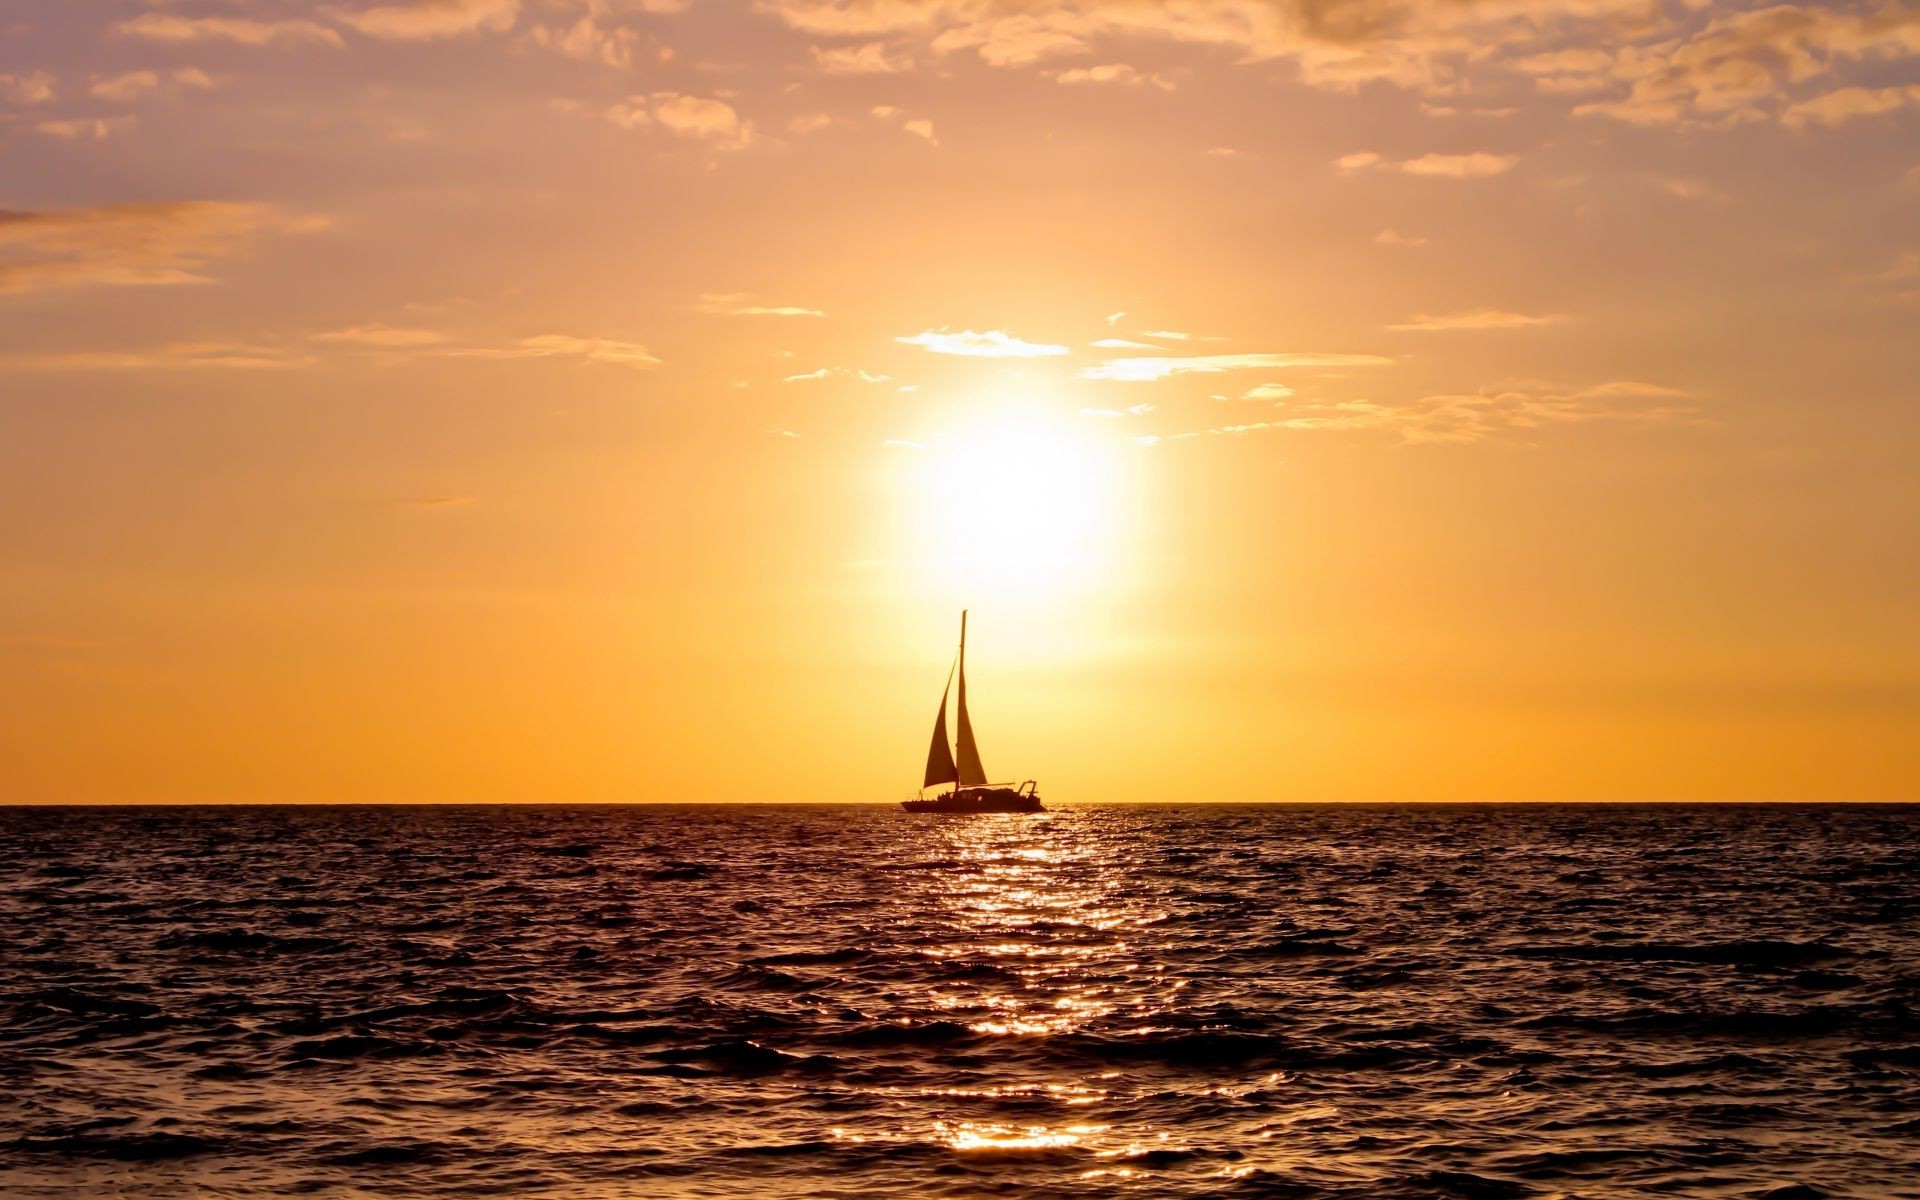 the sunset and sunrise sunset water sea dawn ocean sun boat dusk sailboat evening seascape beach watercraft sky reflection ship light summer